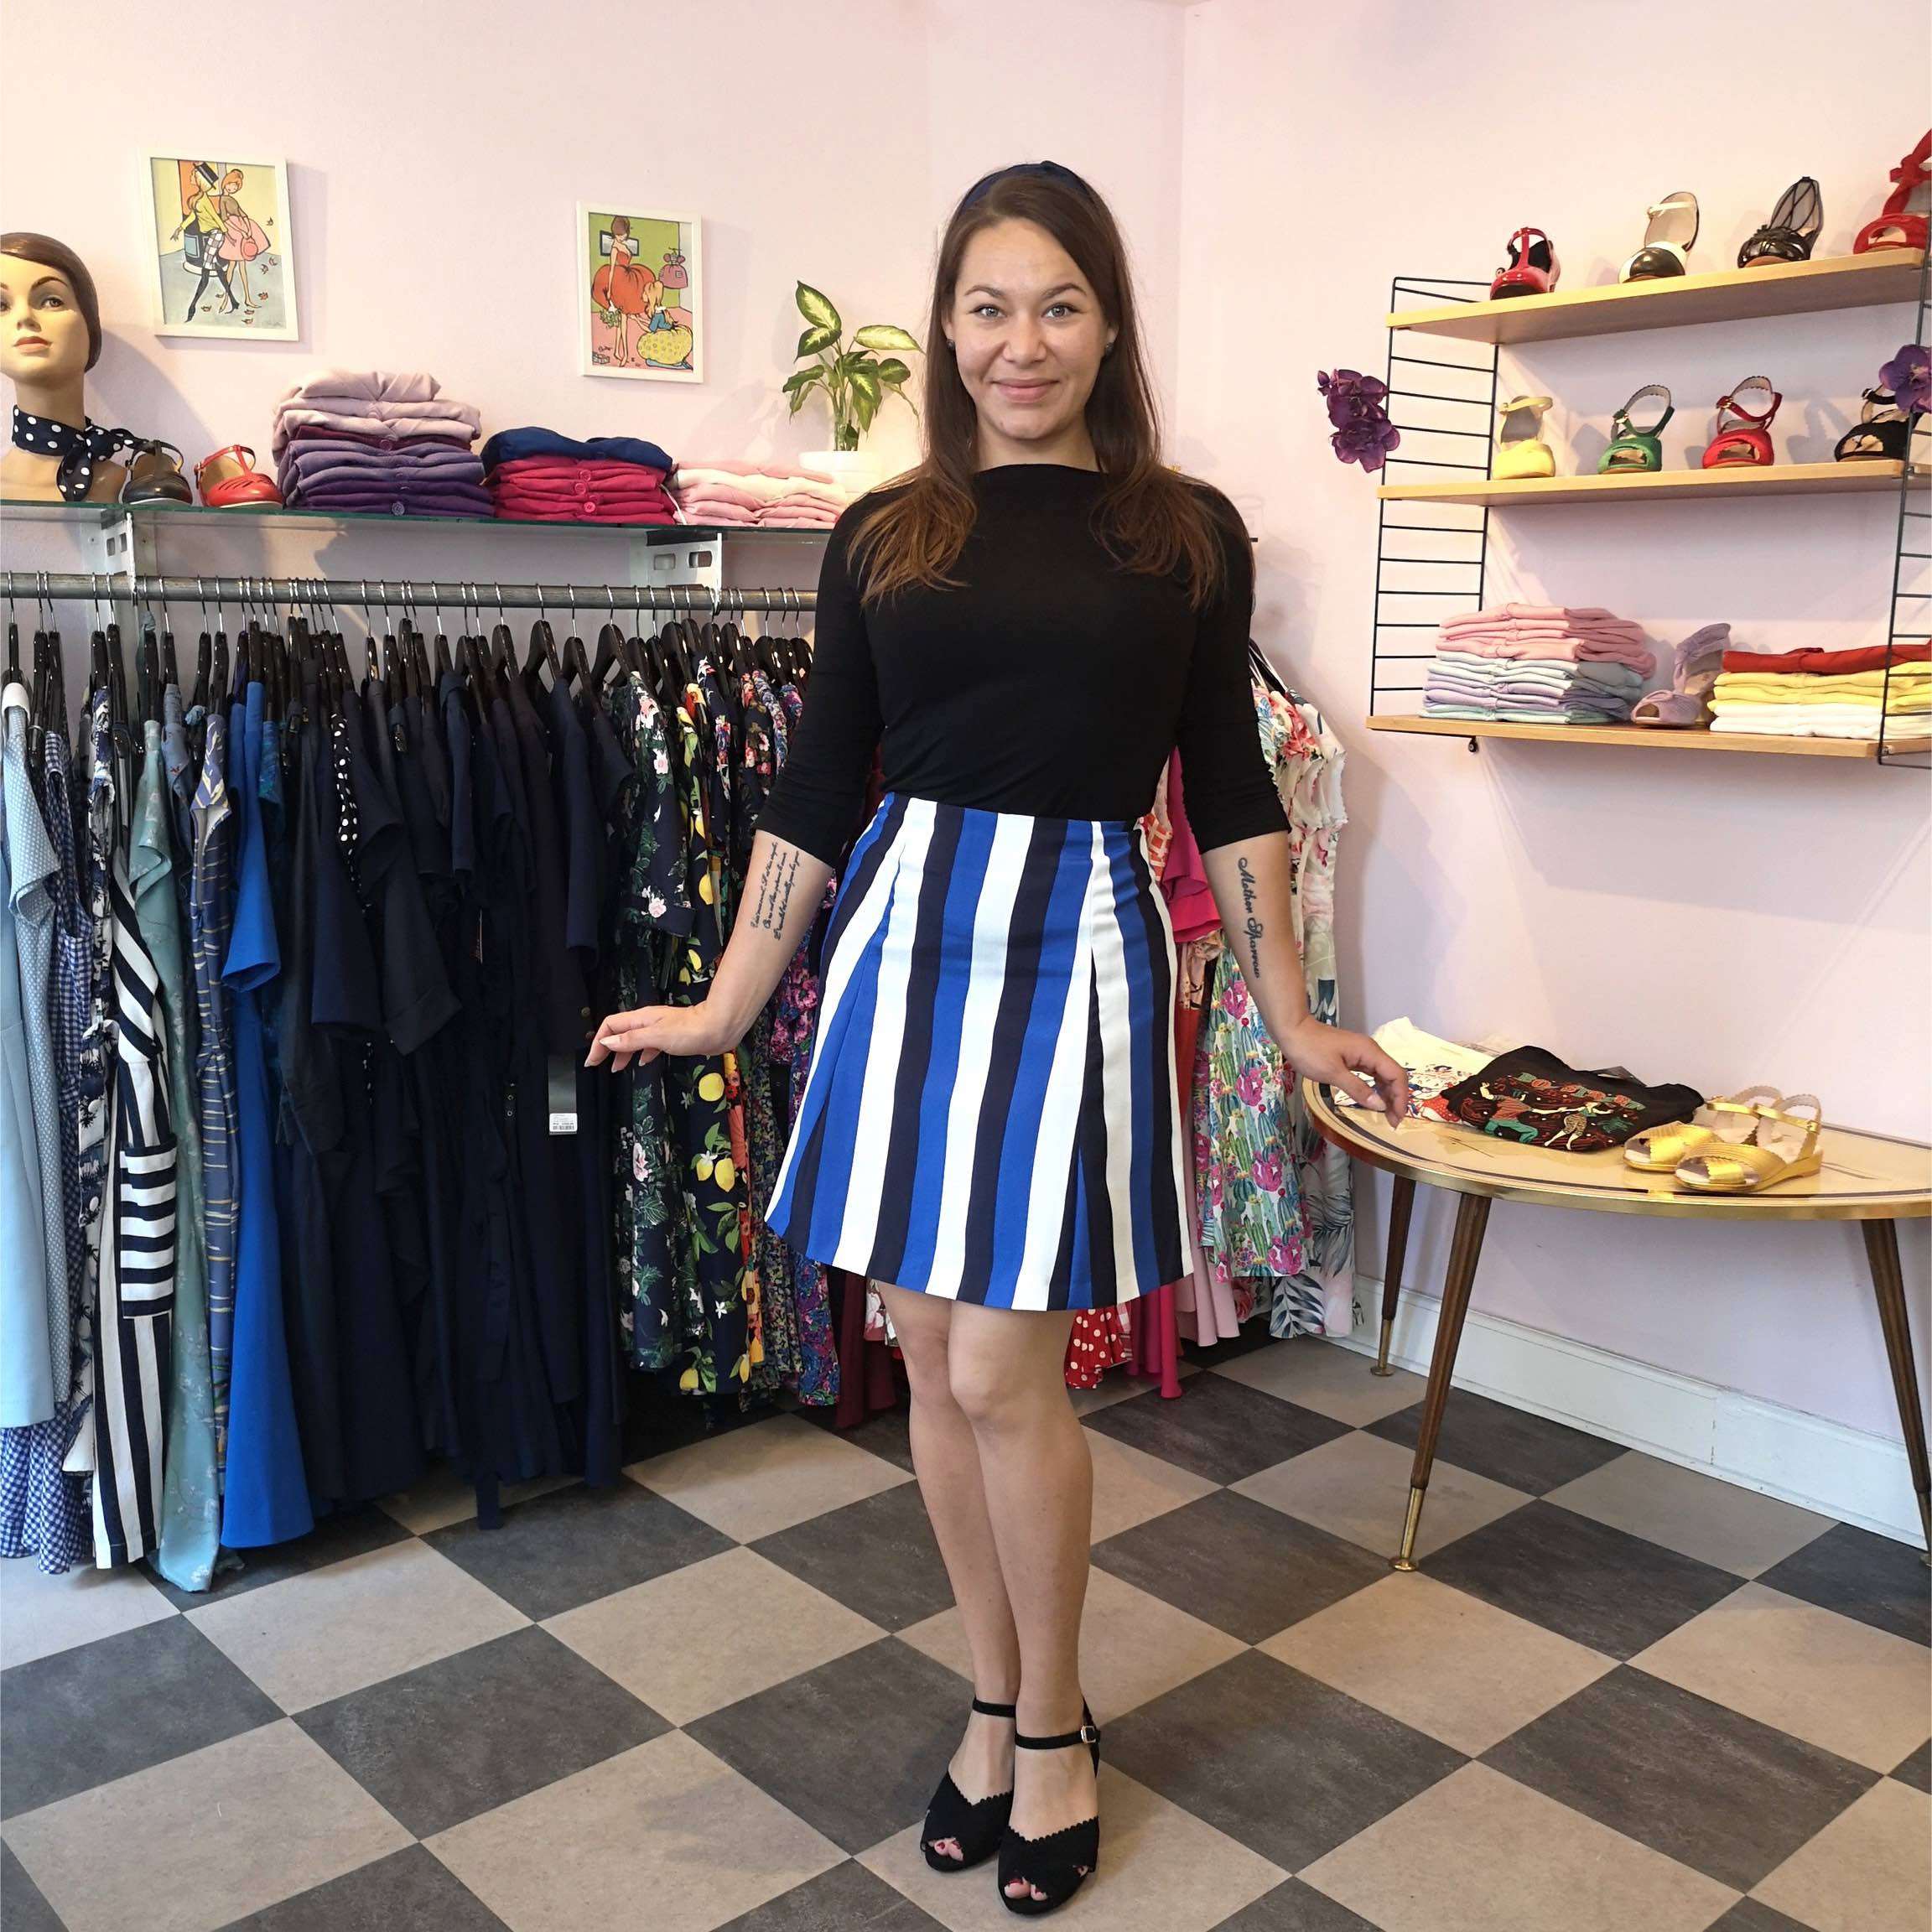 1960s inspired outfit of black classic top and striped 1960s skirt